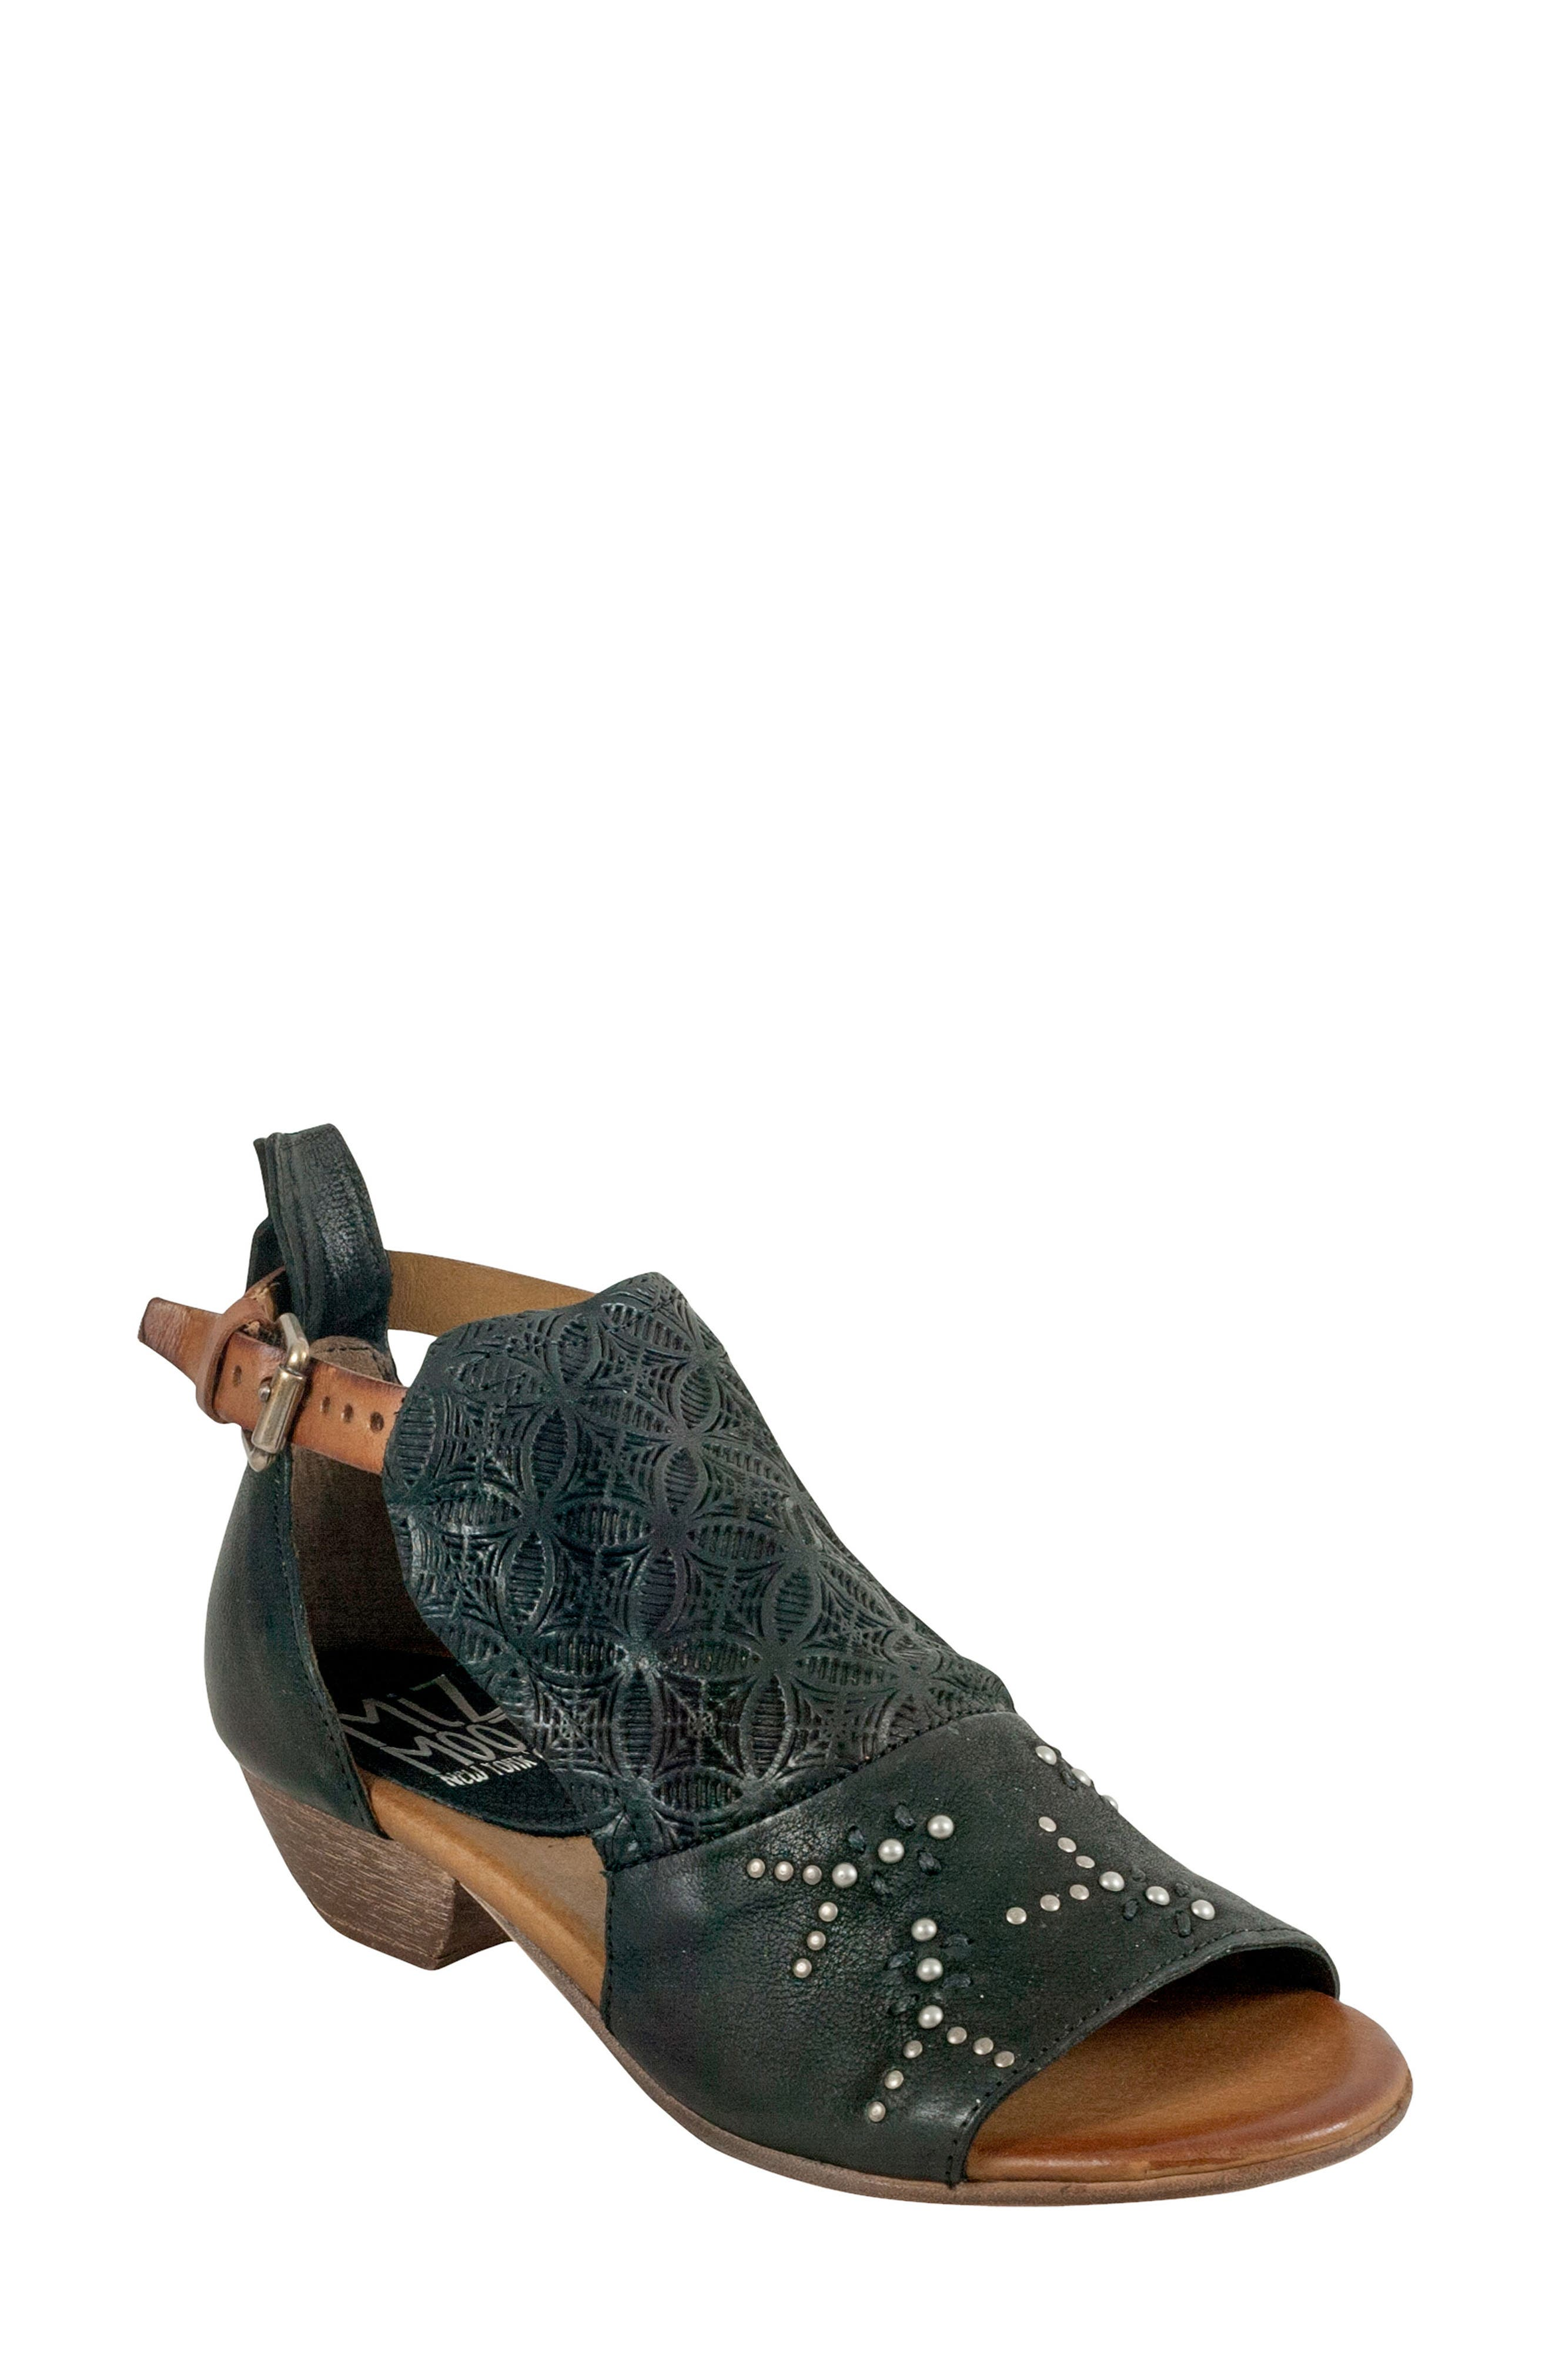 Miz Mooz Carey Embellished Sandal (Women)